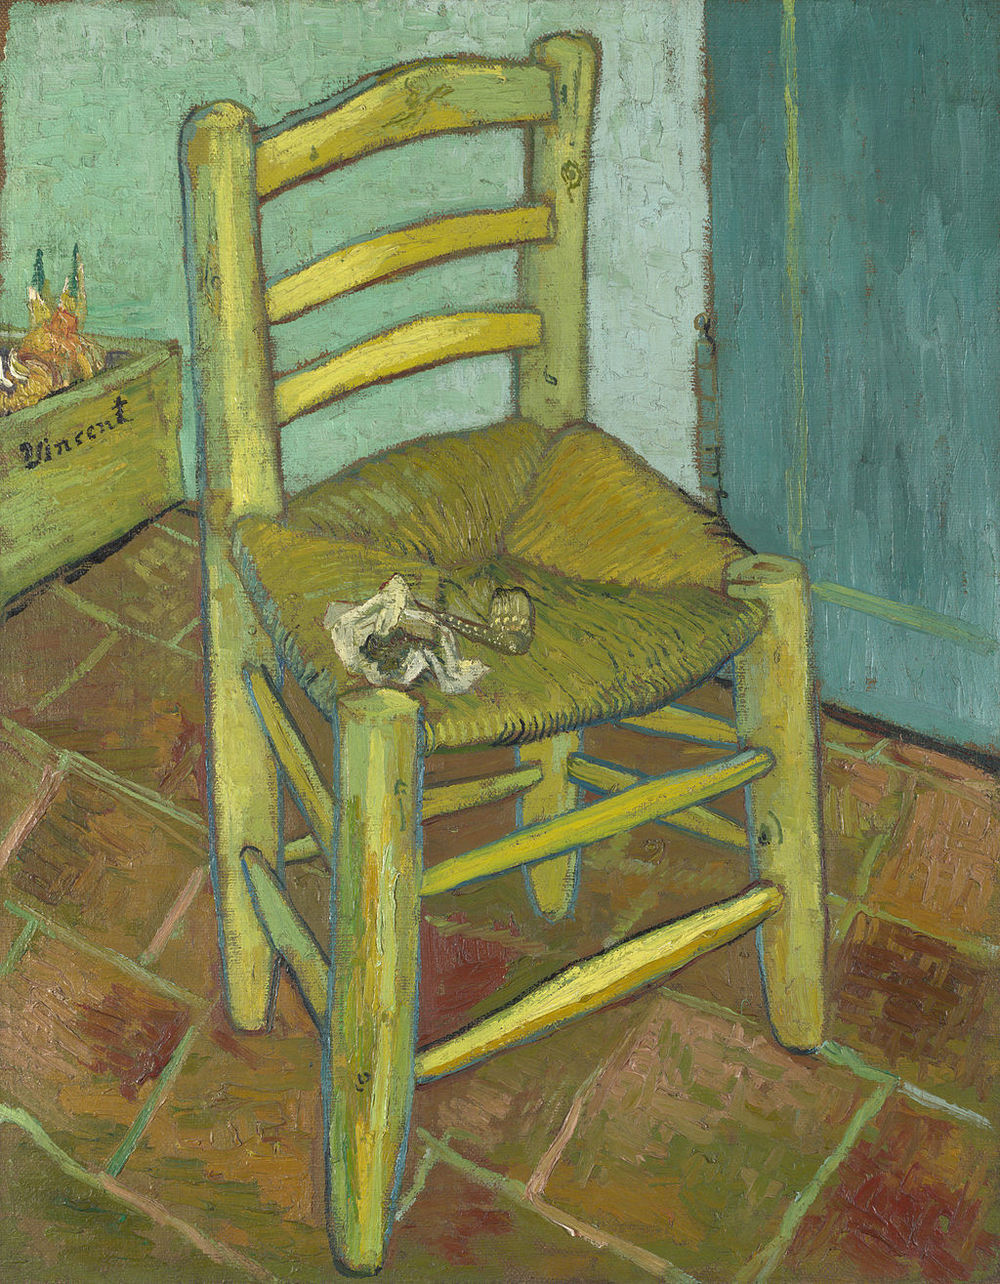 Vincent van Gogh, Chair, 1888, National Gallery, London.